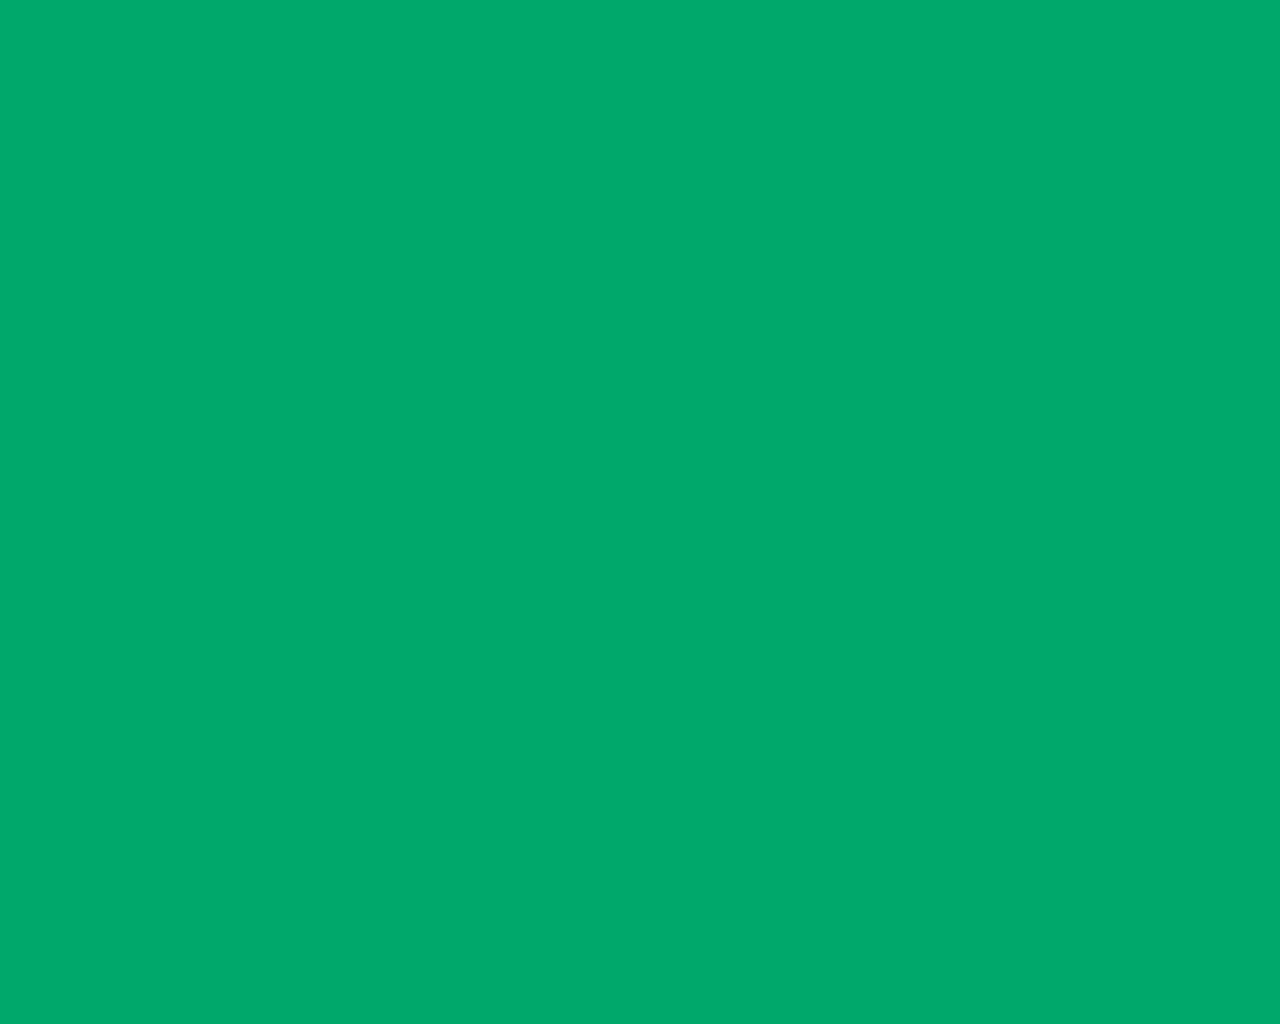 1280x1024 Jade Solid Color Background   For the Home   Pinterest ... e370a508df